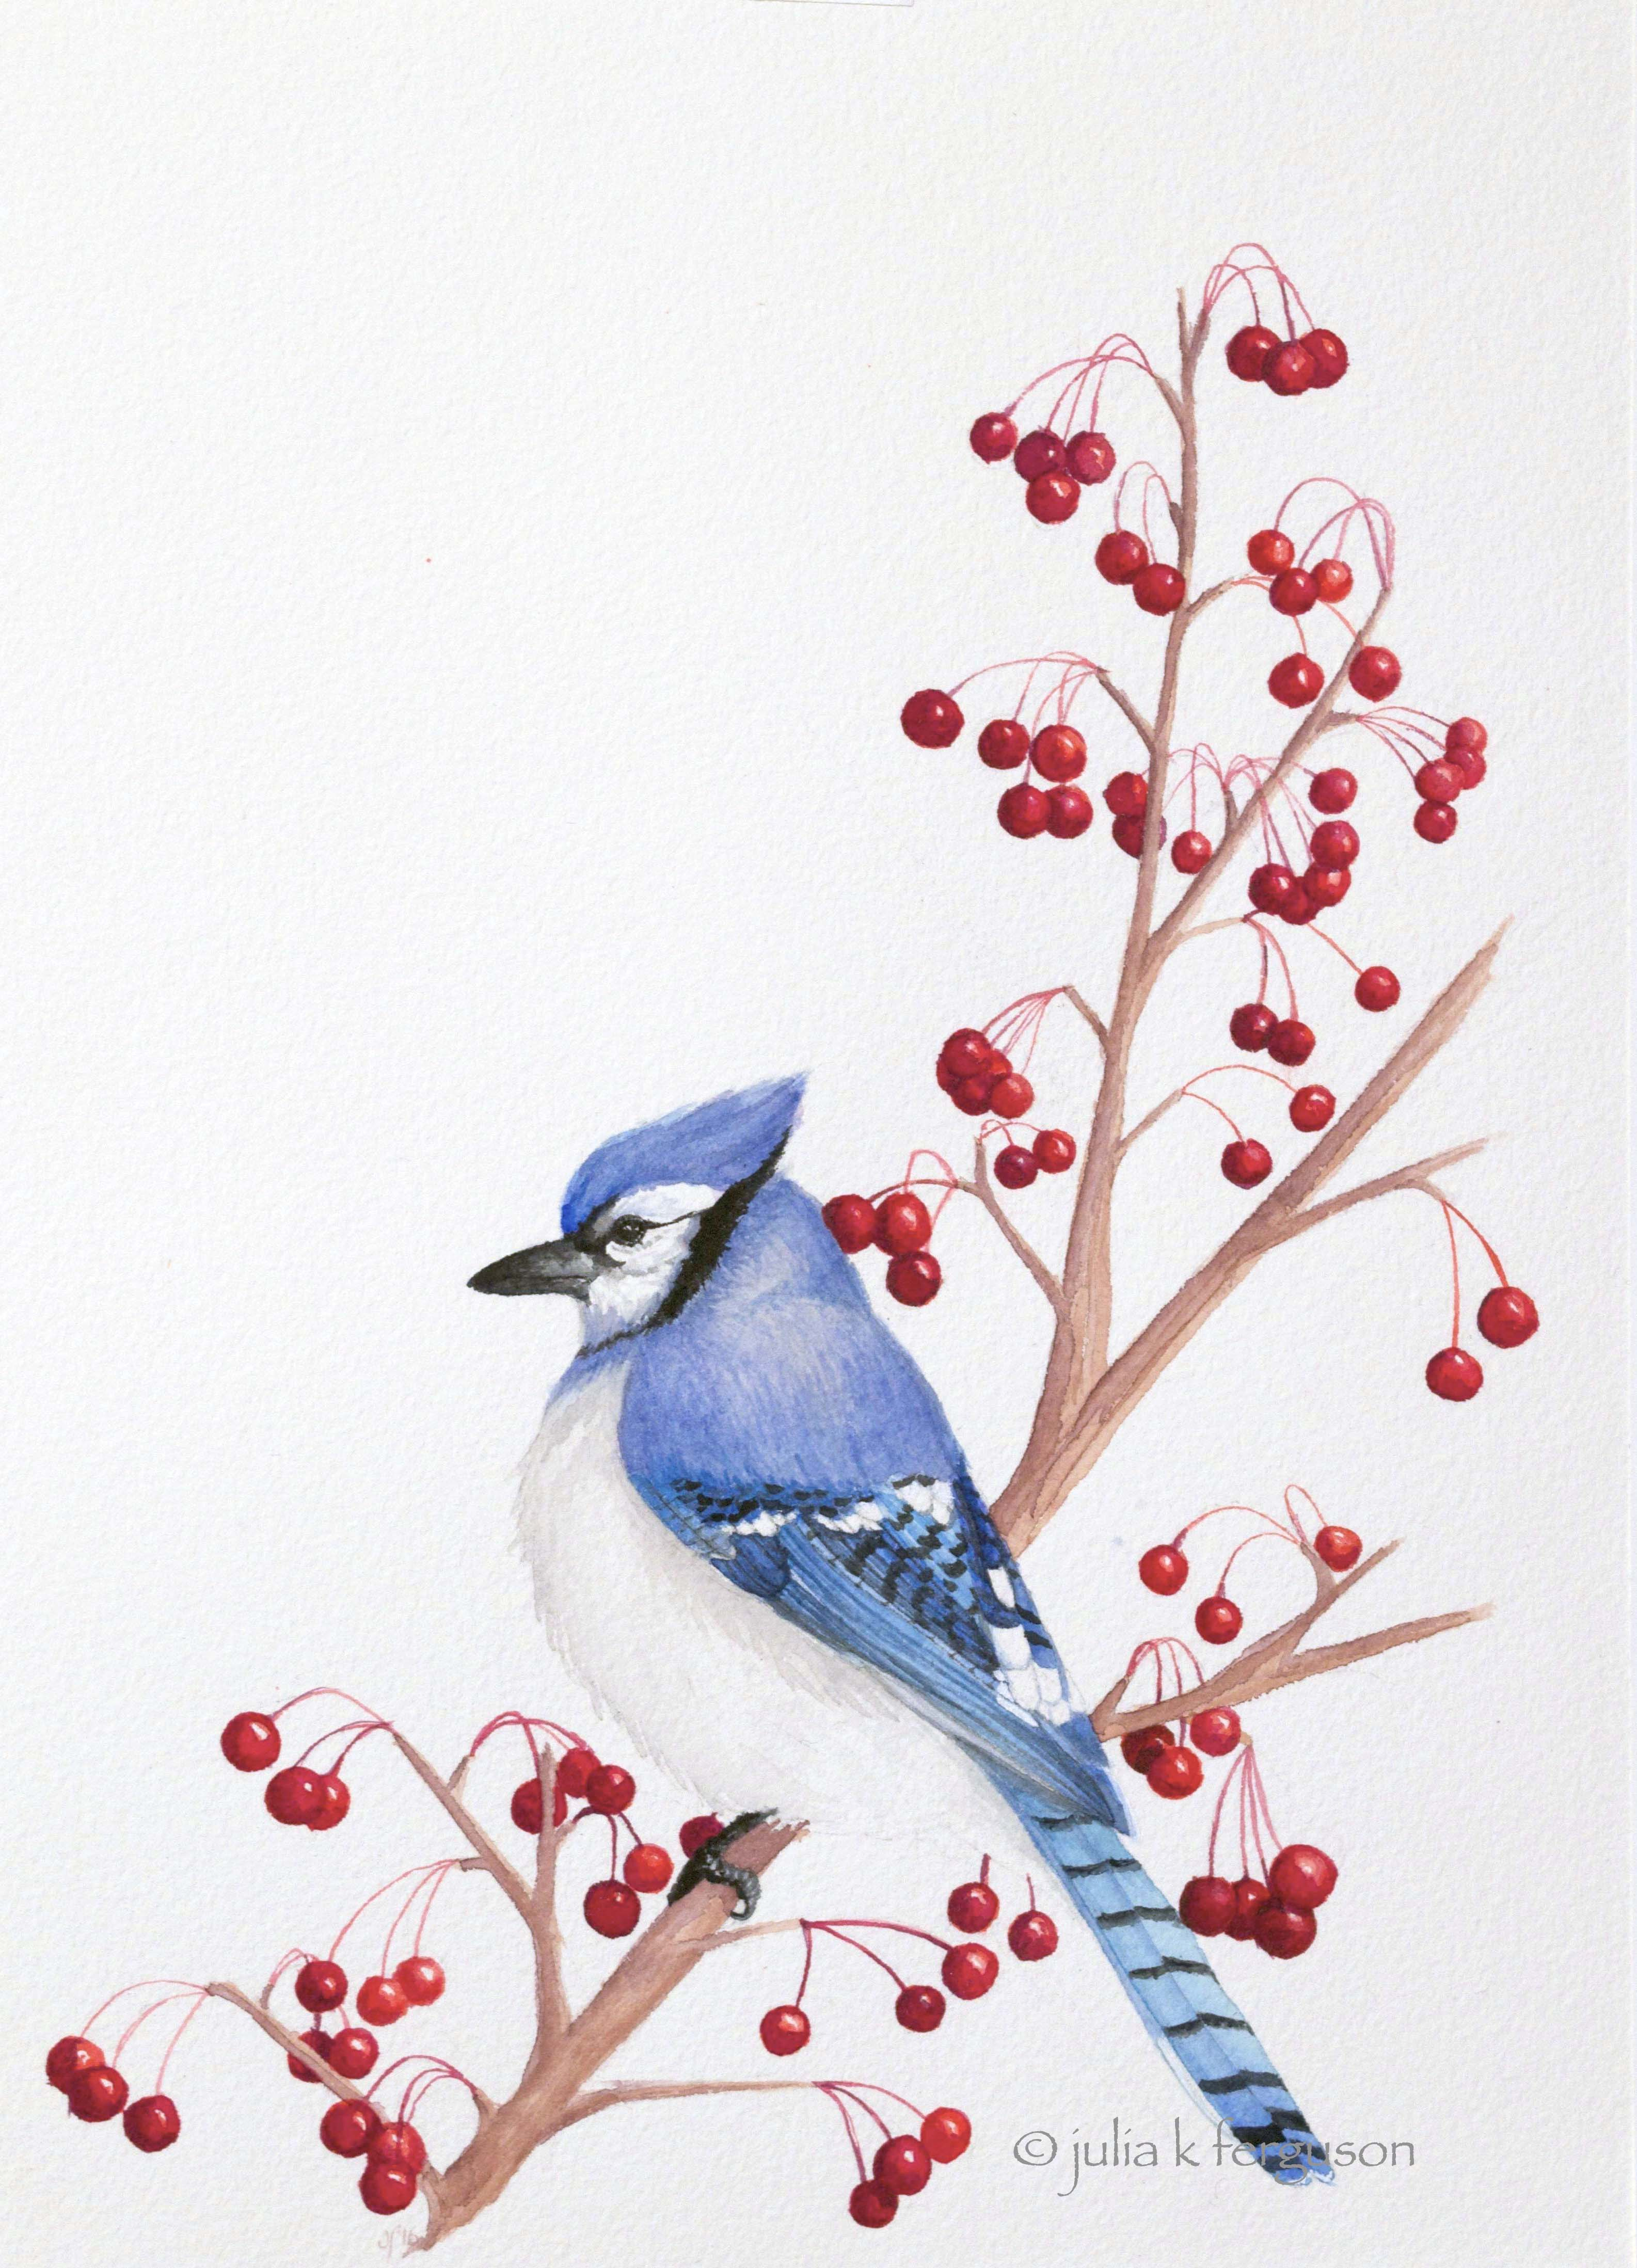 Blue Jay on Crabapple